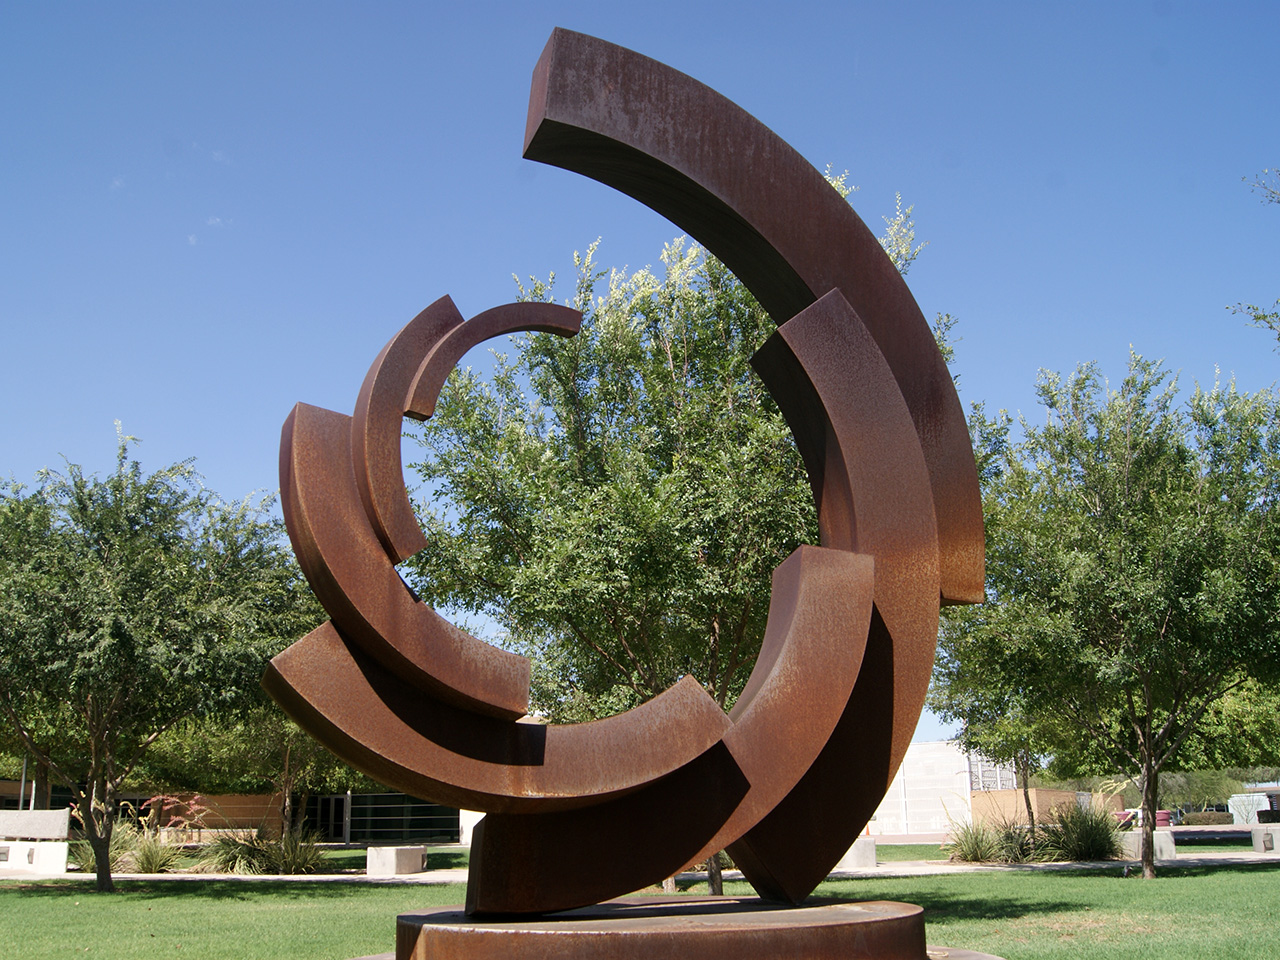 quarter ring sculpture